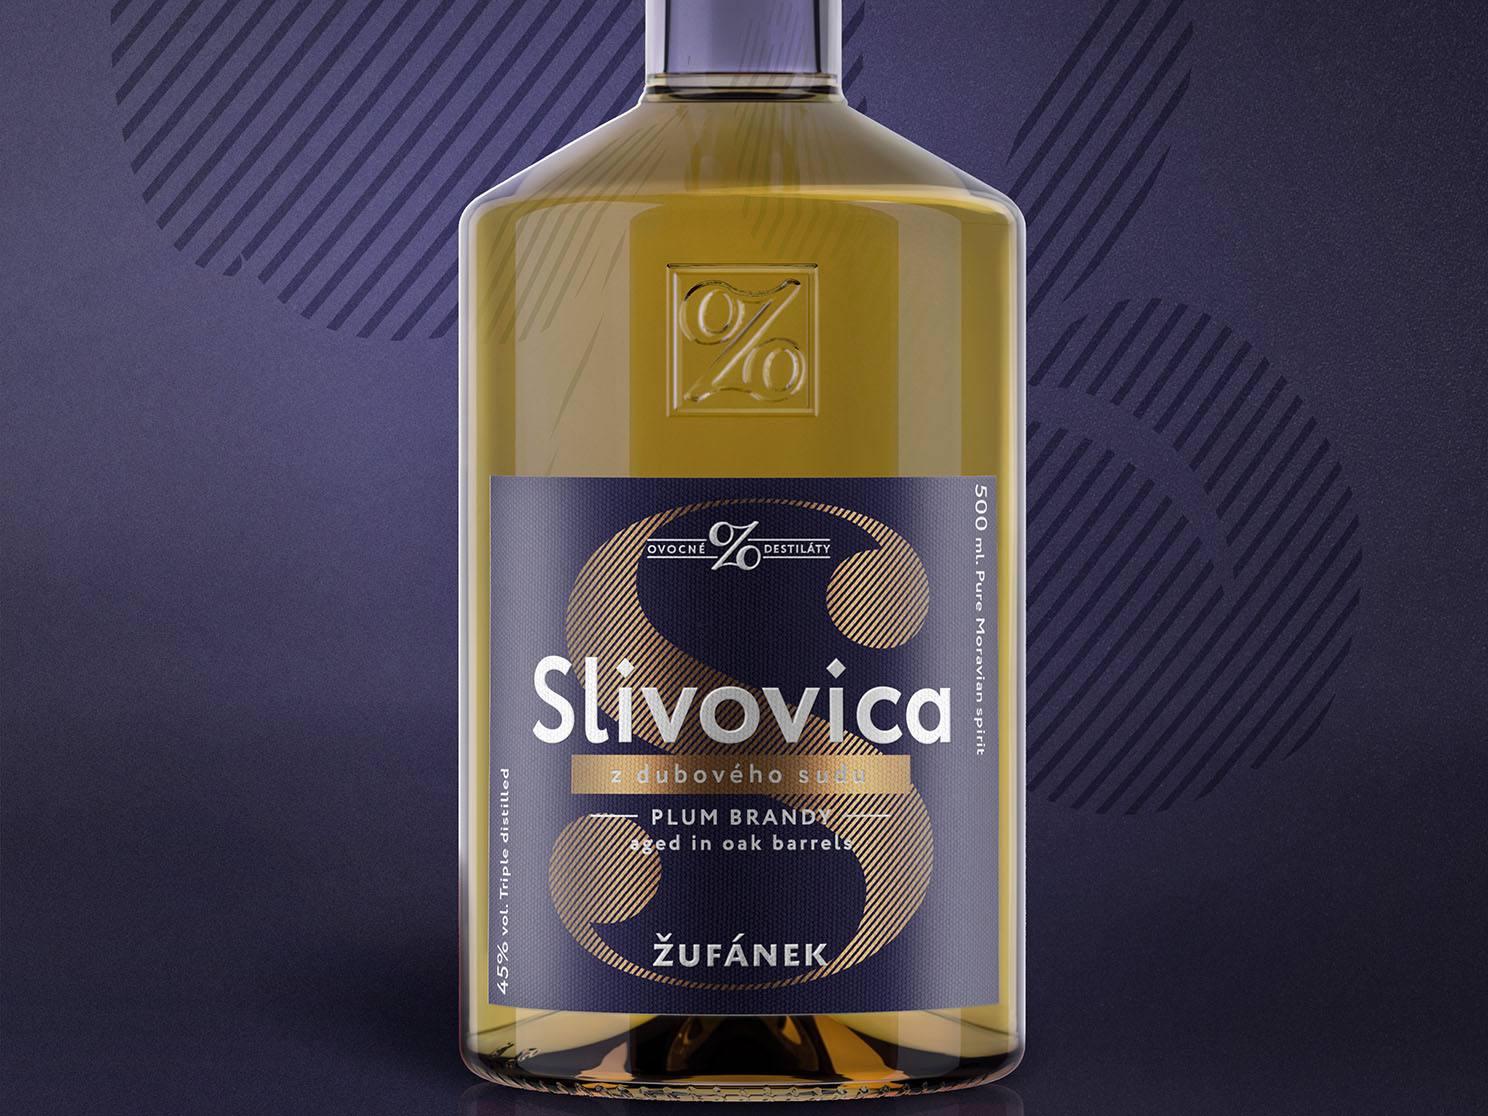 slivovica dub visual